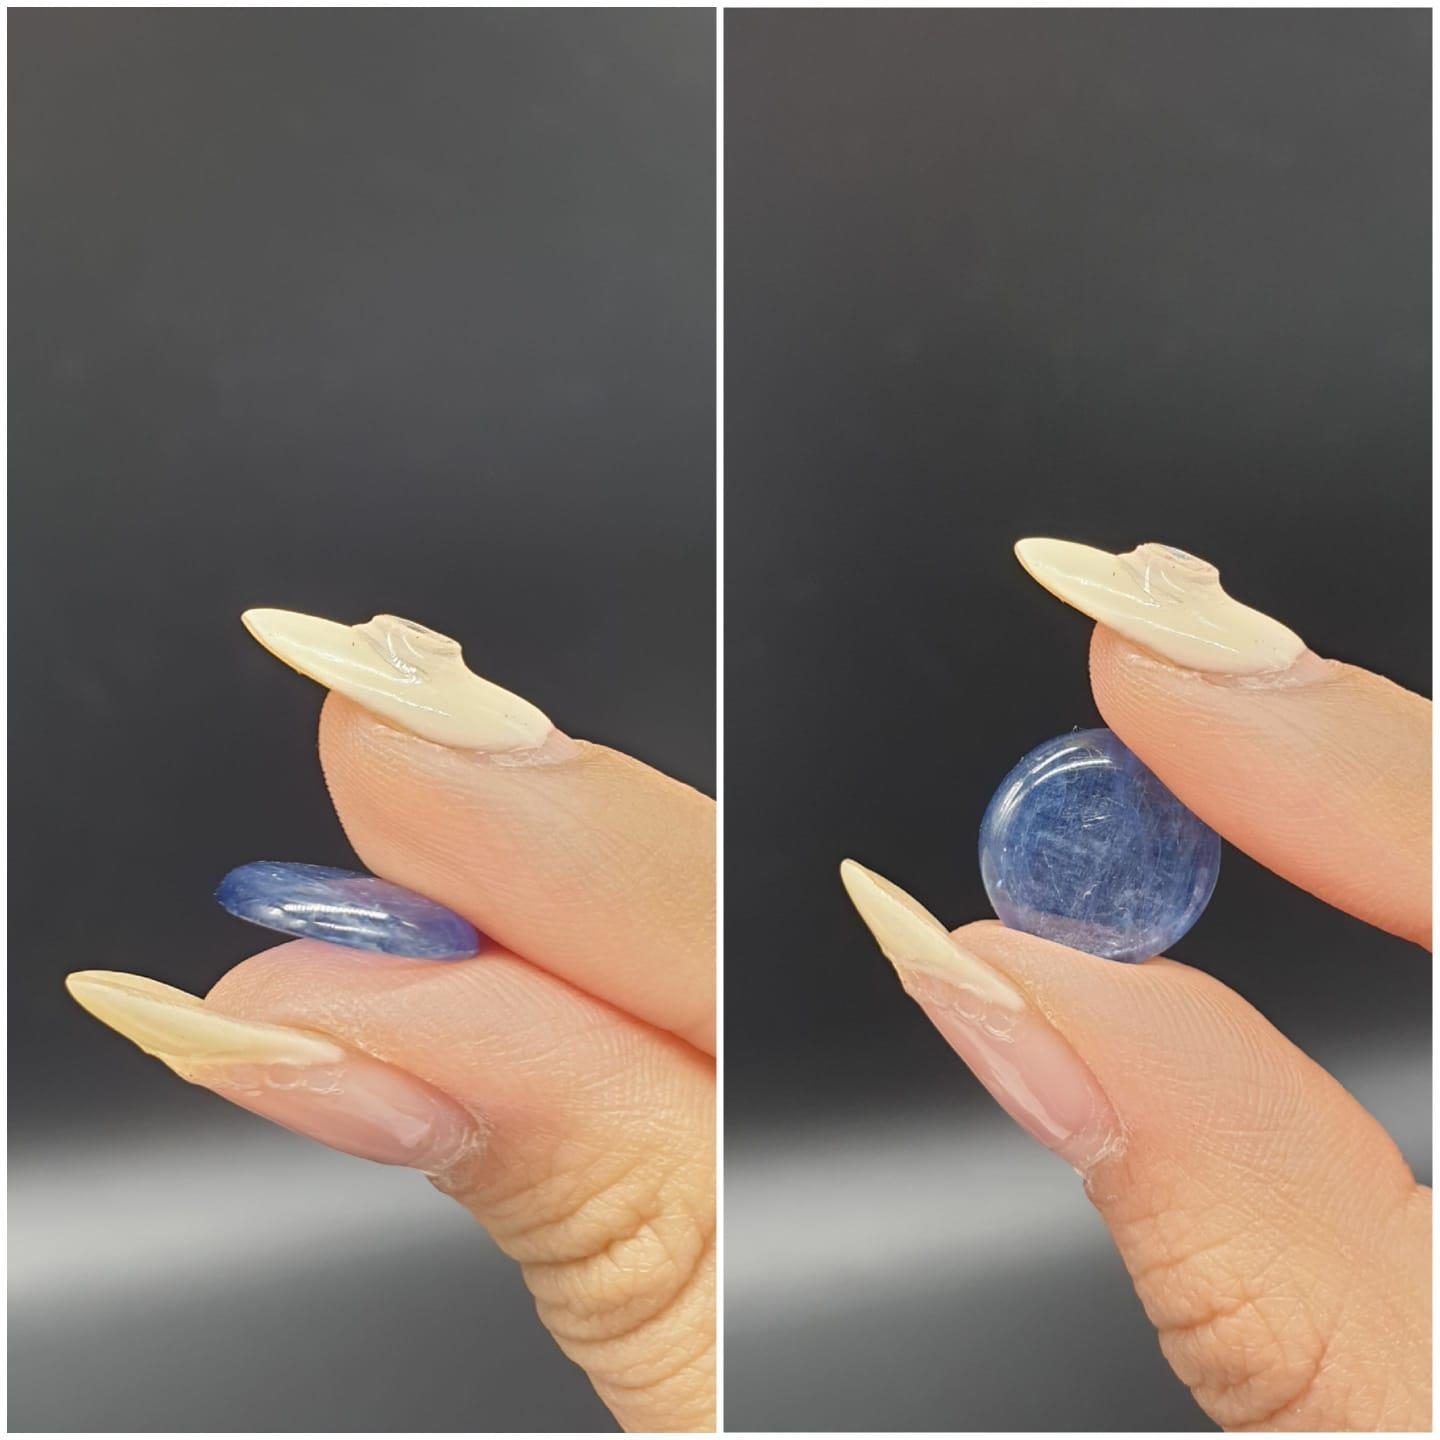 6.82 Ct Kyanite. Round cabochon. IDT certified - Image 4 of 5